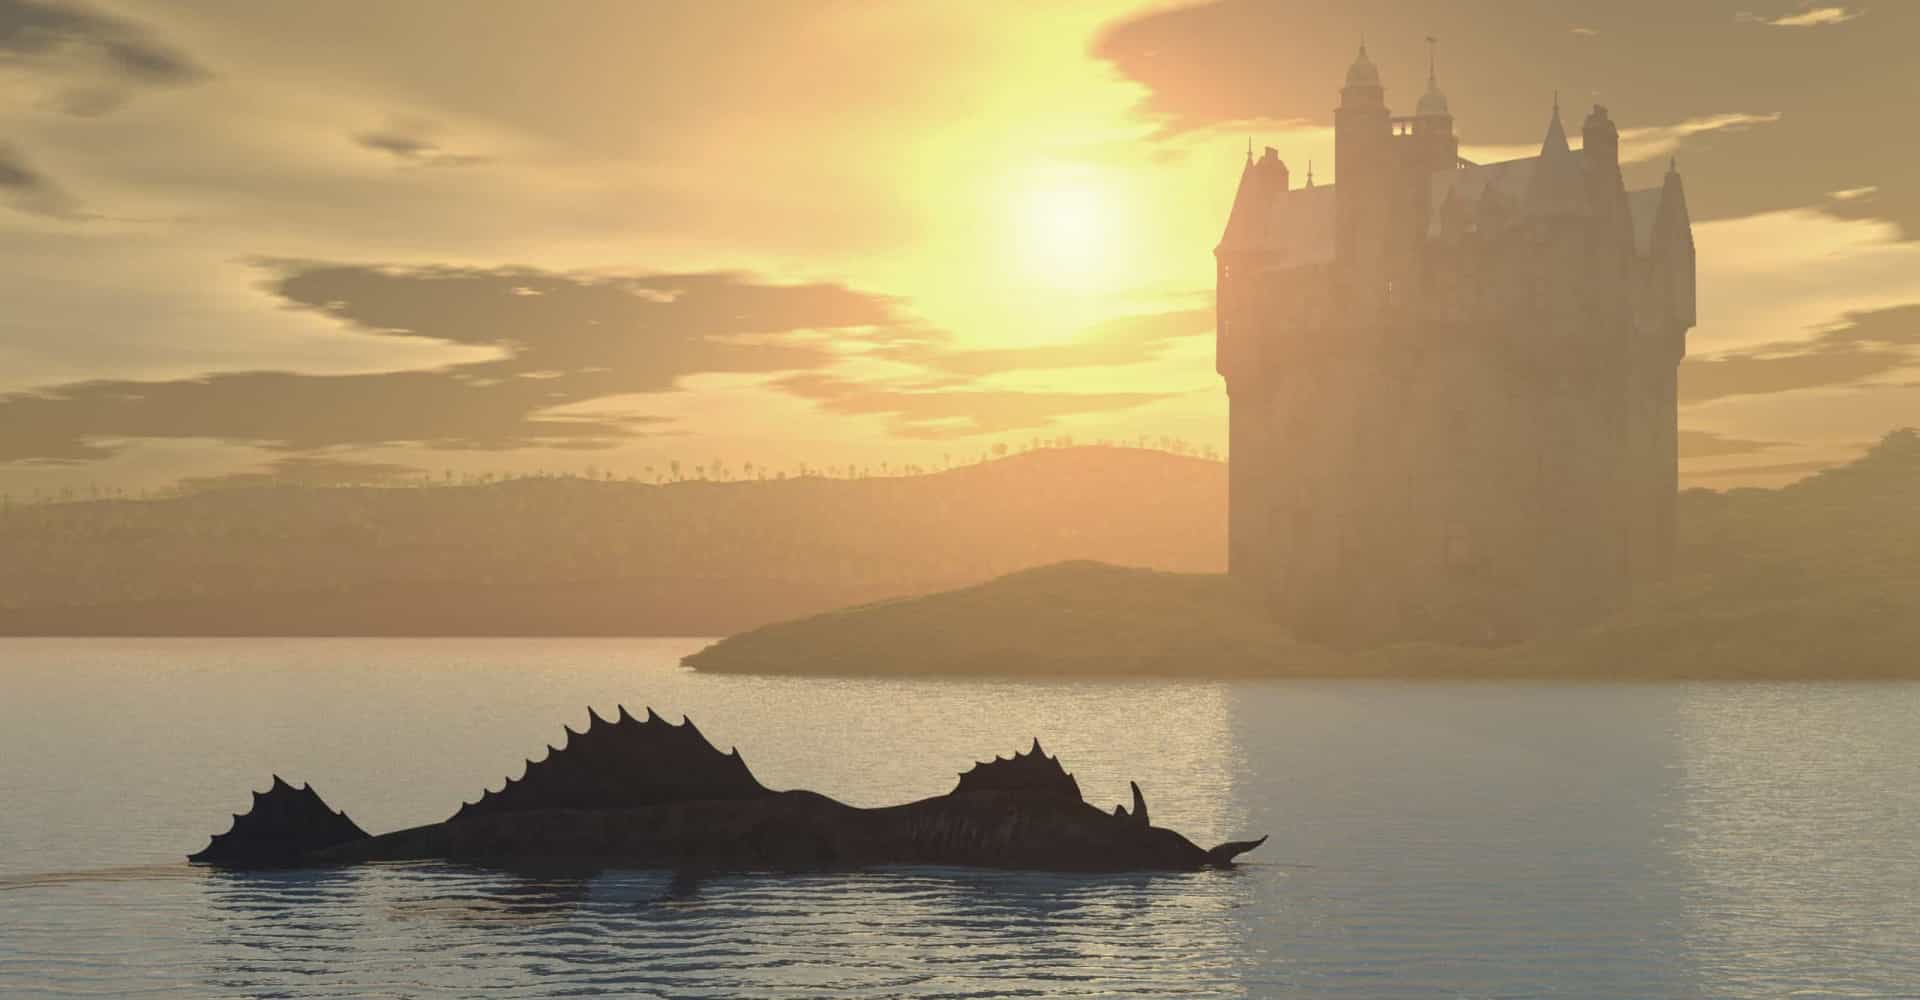 Le monstre du Loch Ness: légende ou énigme scientifique?